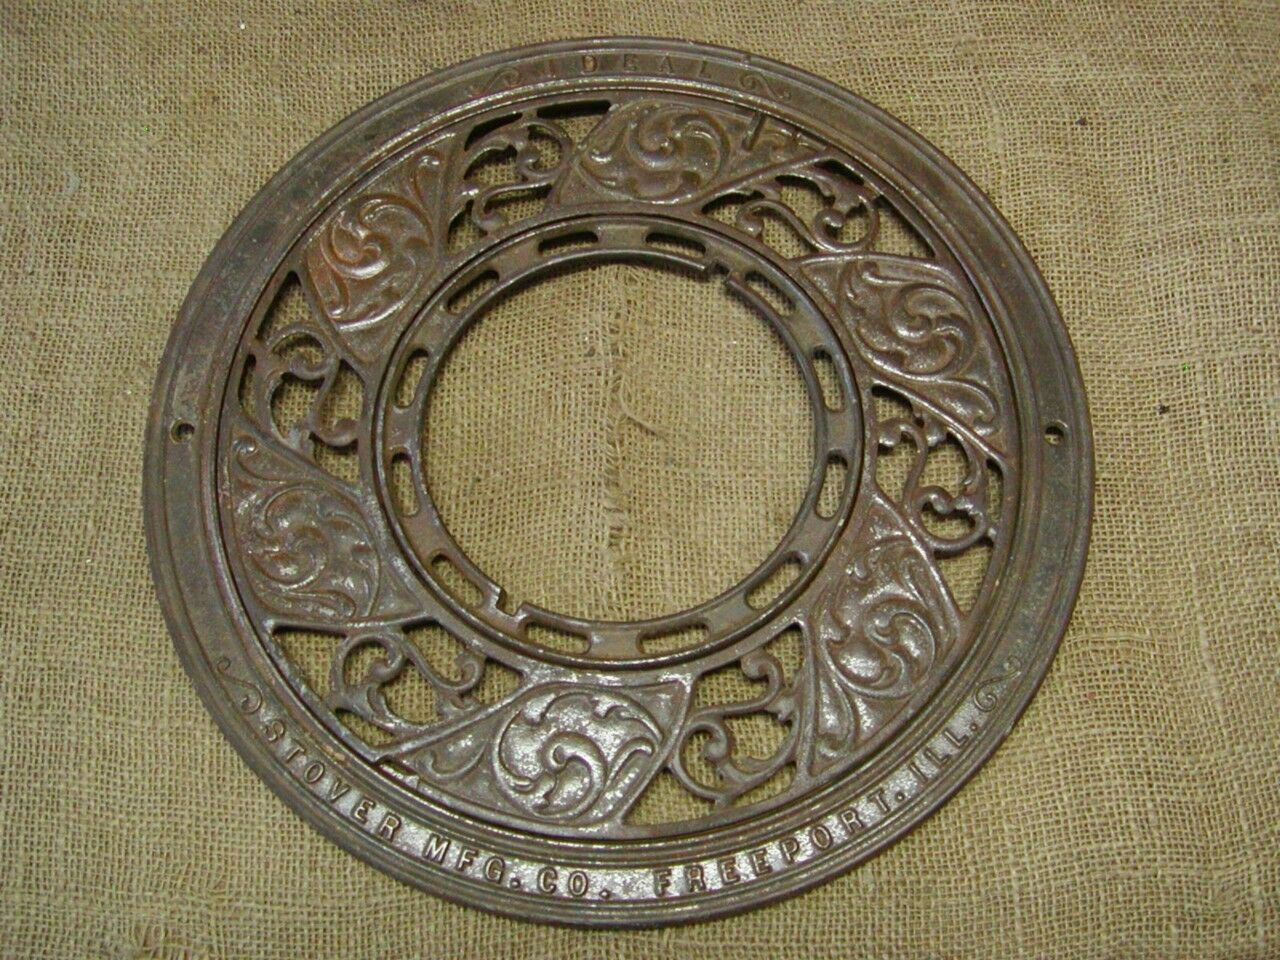 Vintage Ornate Cast Iron Register Grate > Antique Old Shabby Round Garden 6679